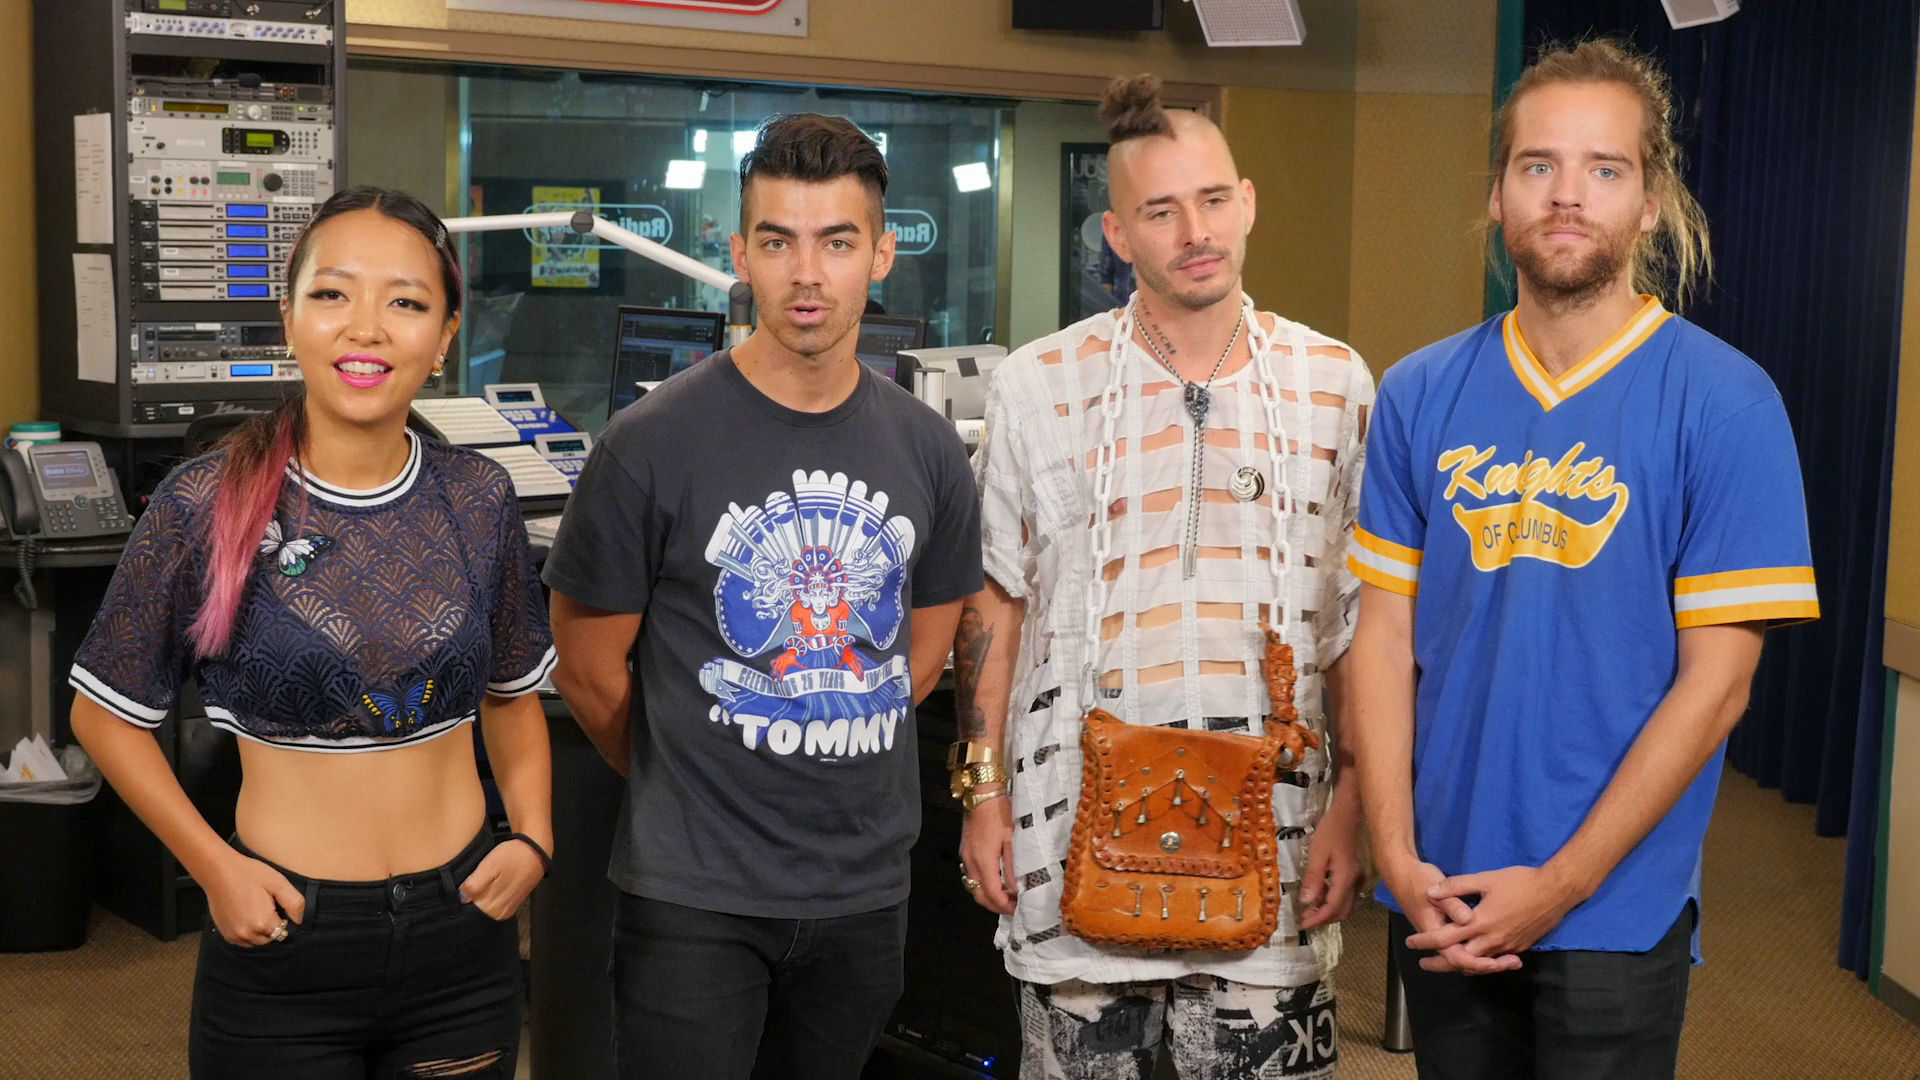 DNCE RD DM | Radio Disney Direct Message